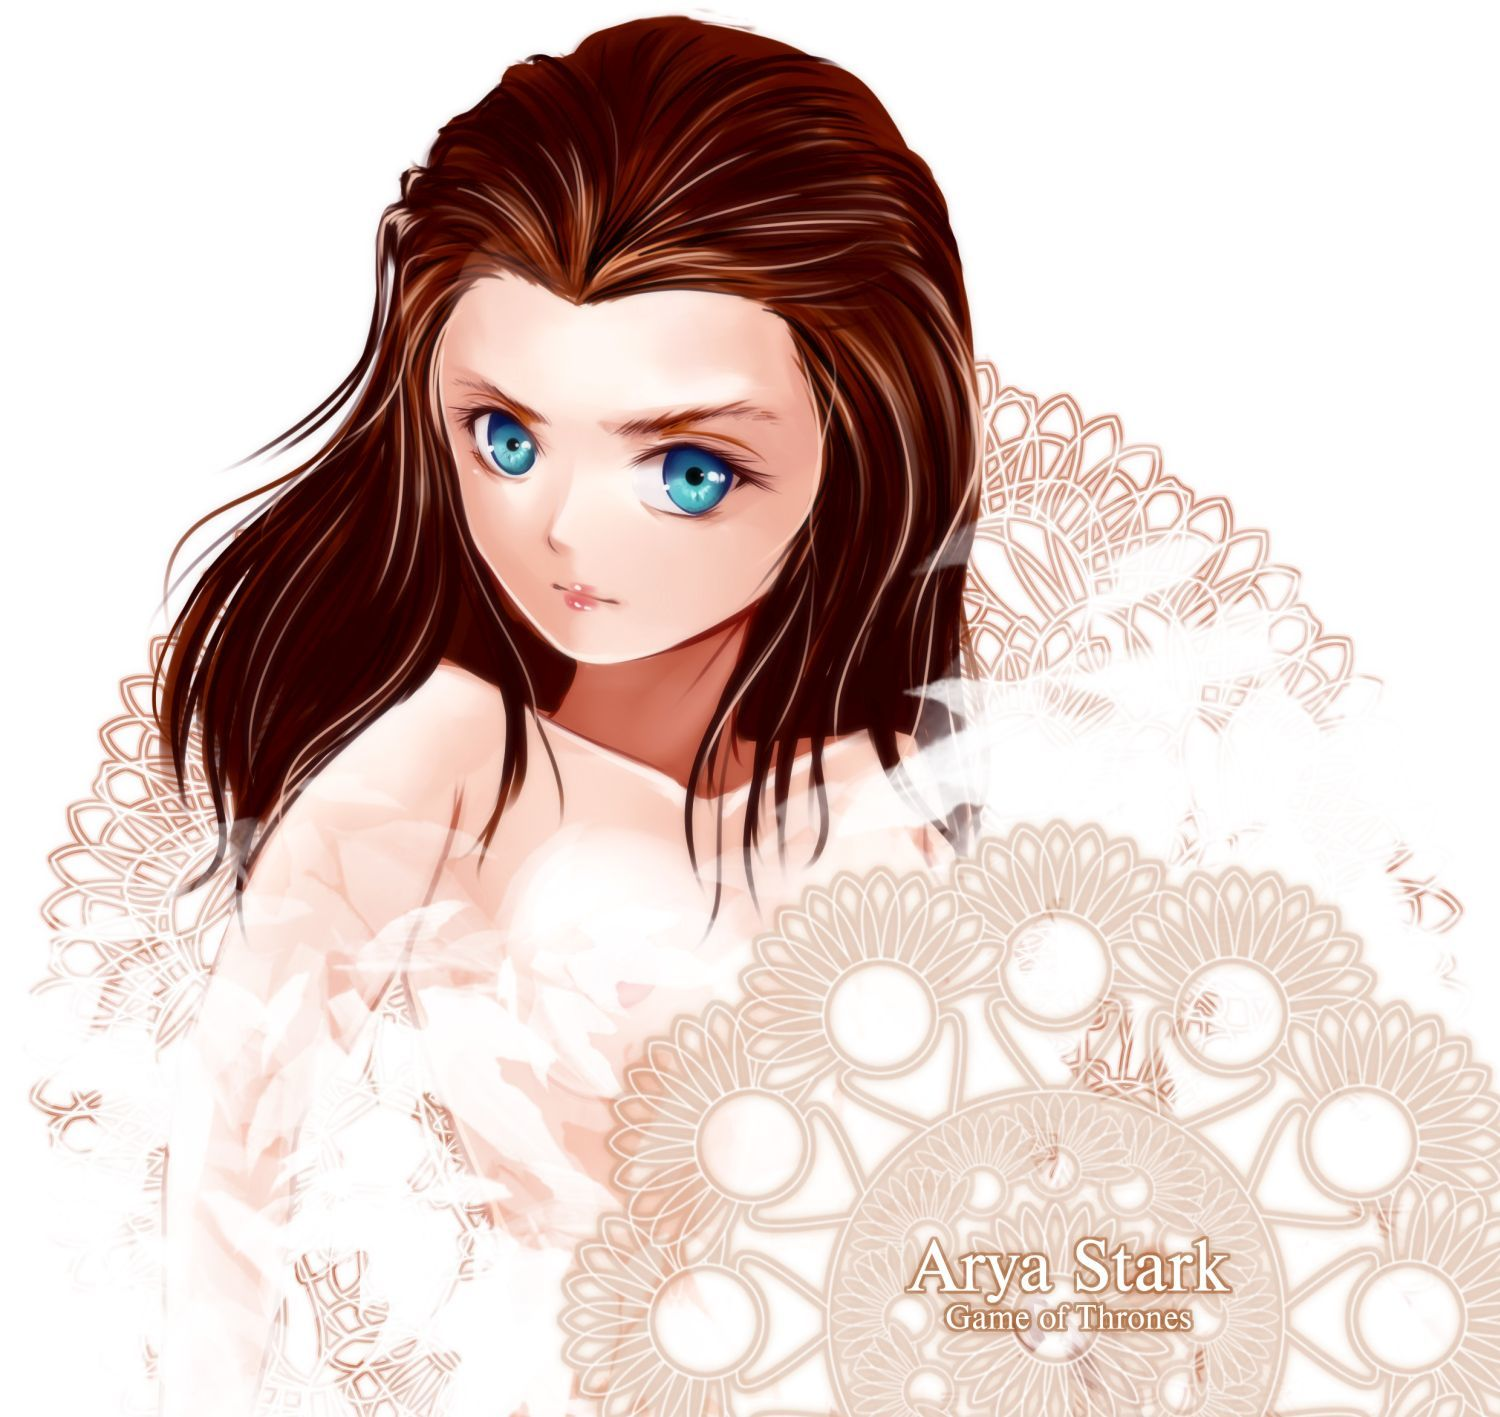 Arya Stark (2) - Game of Thrones